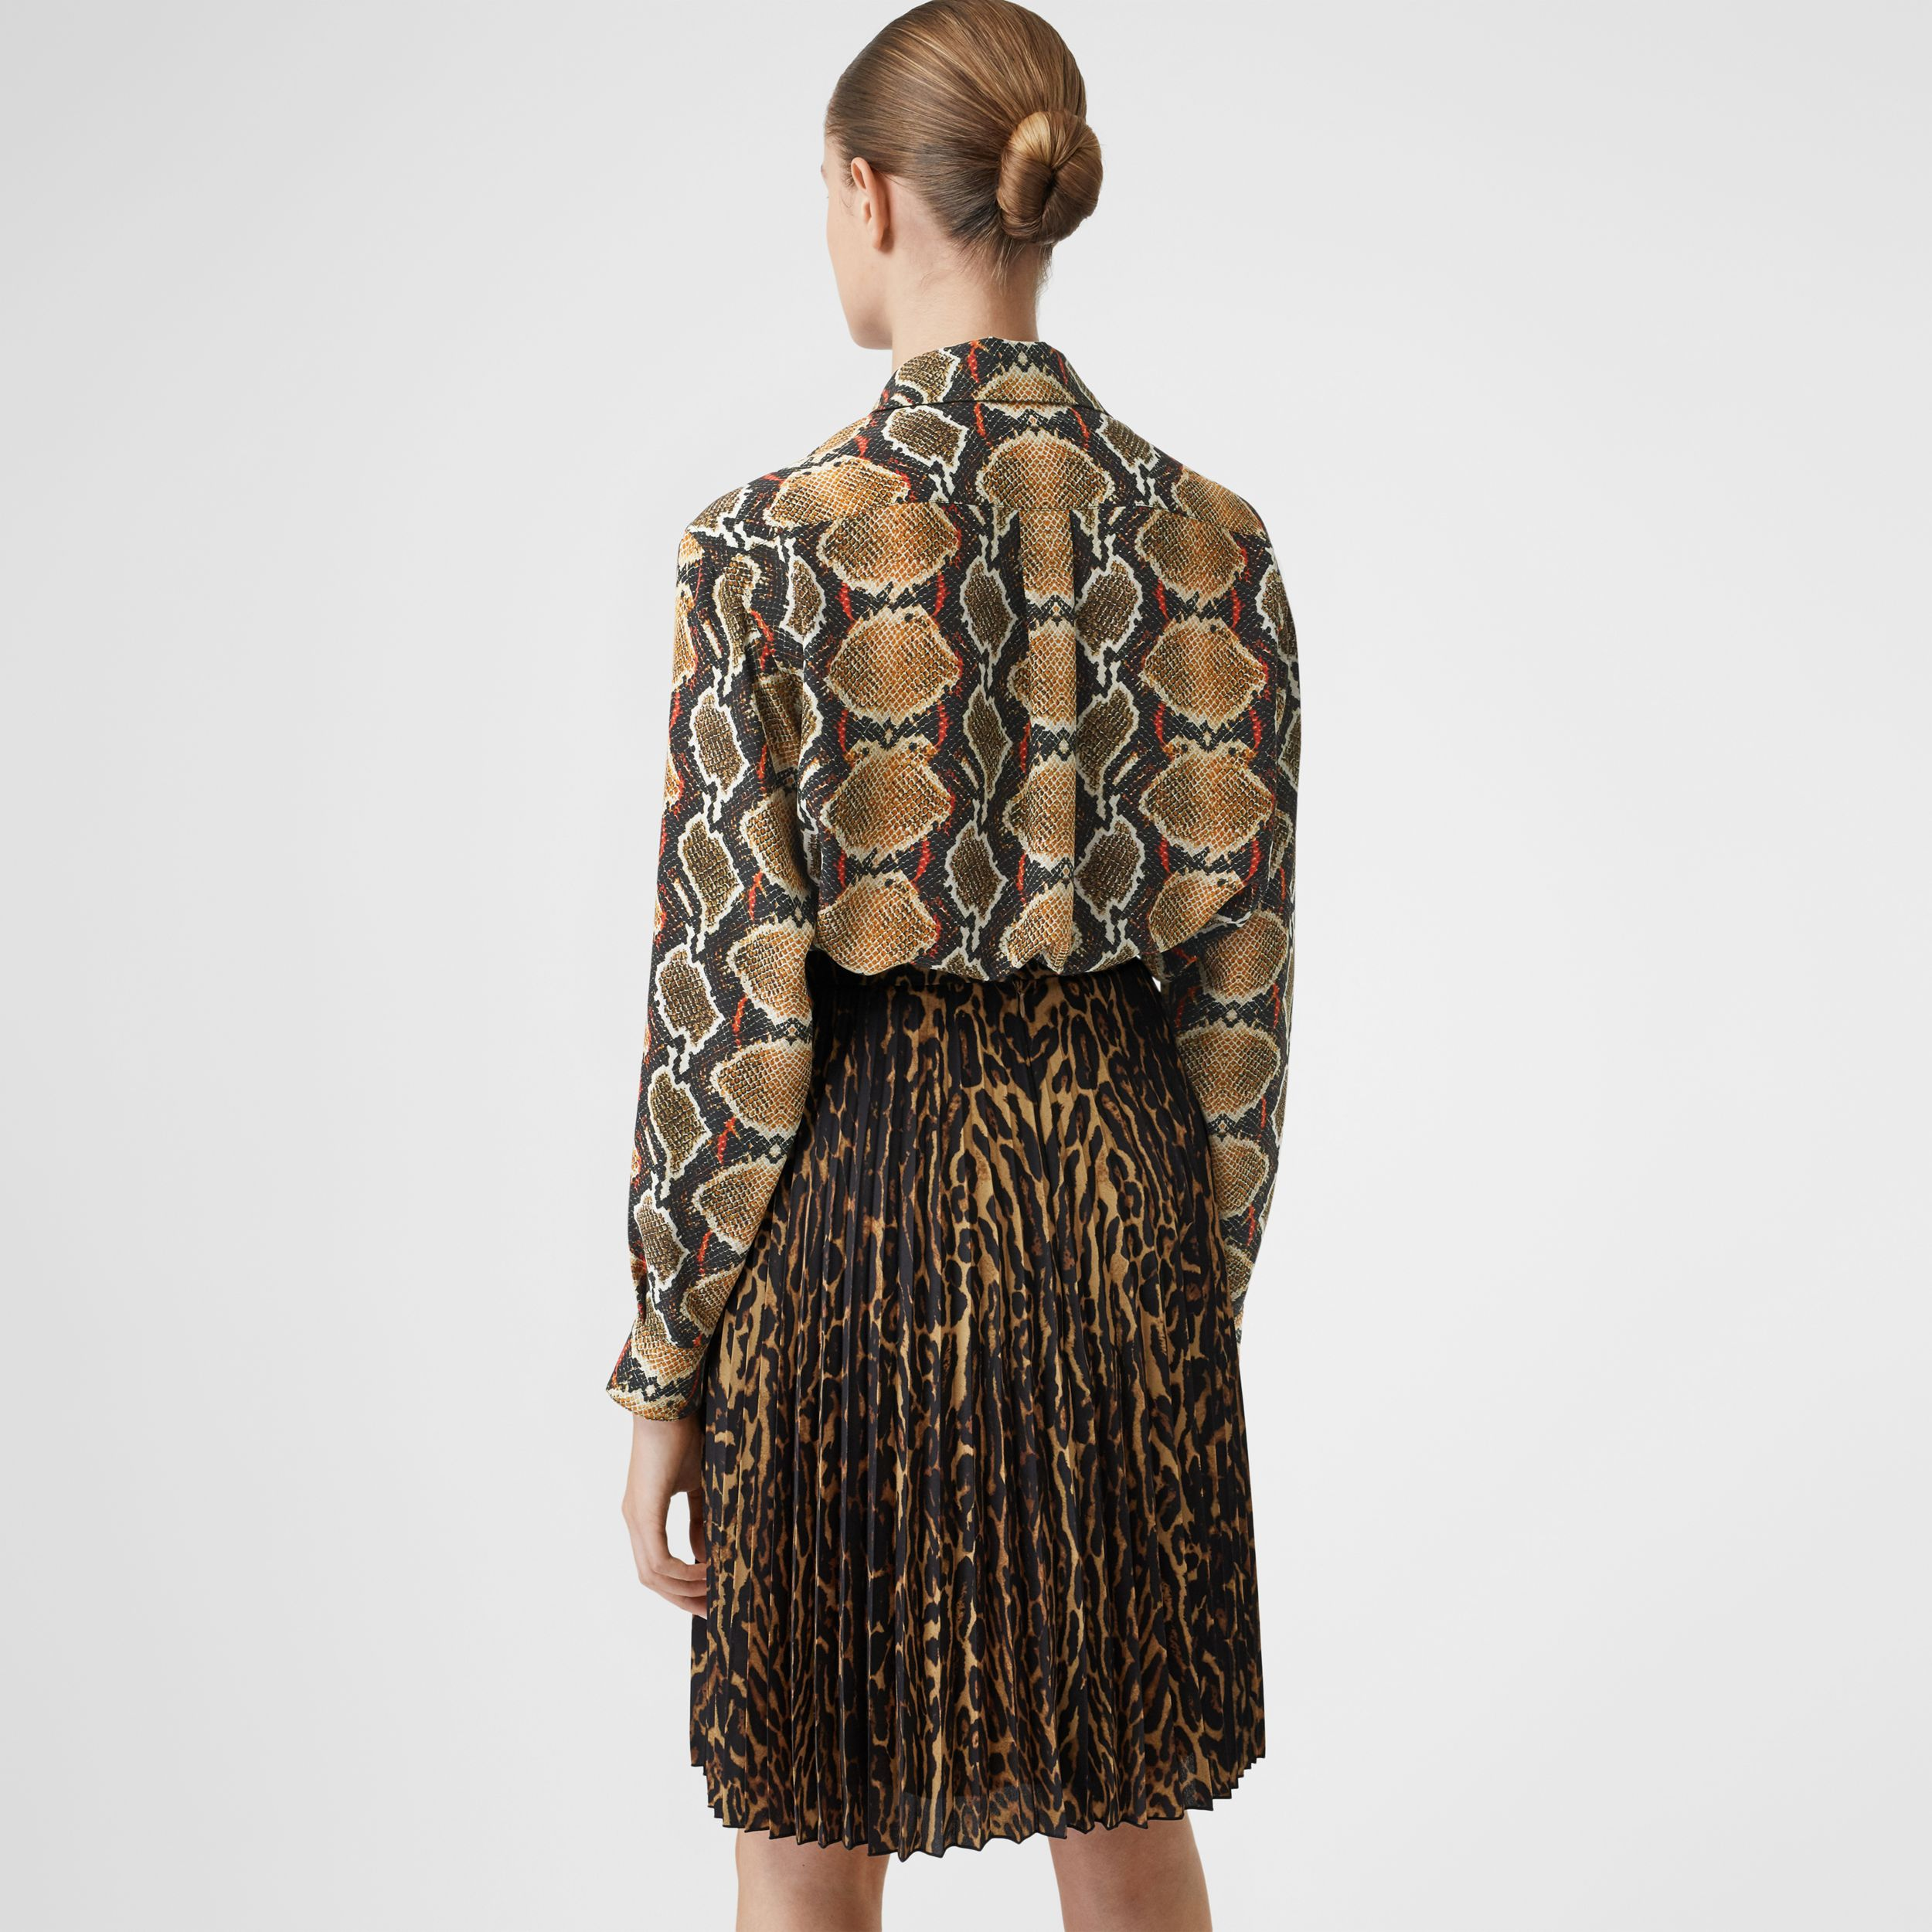 Python Print Silk Shirt in Soft Cocoa - Women | Burberry - 3